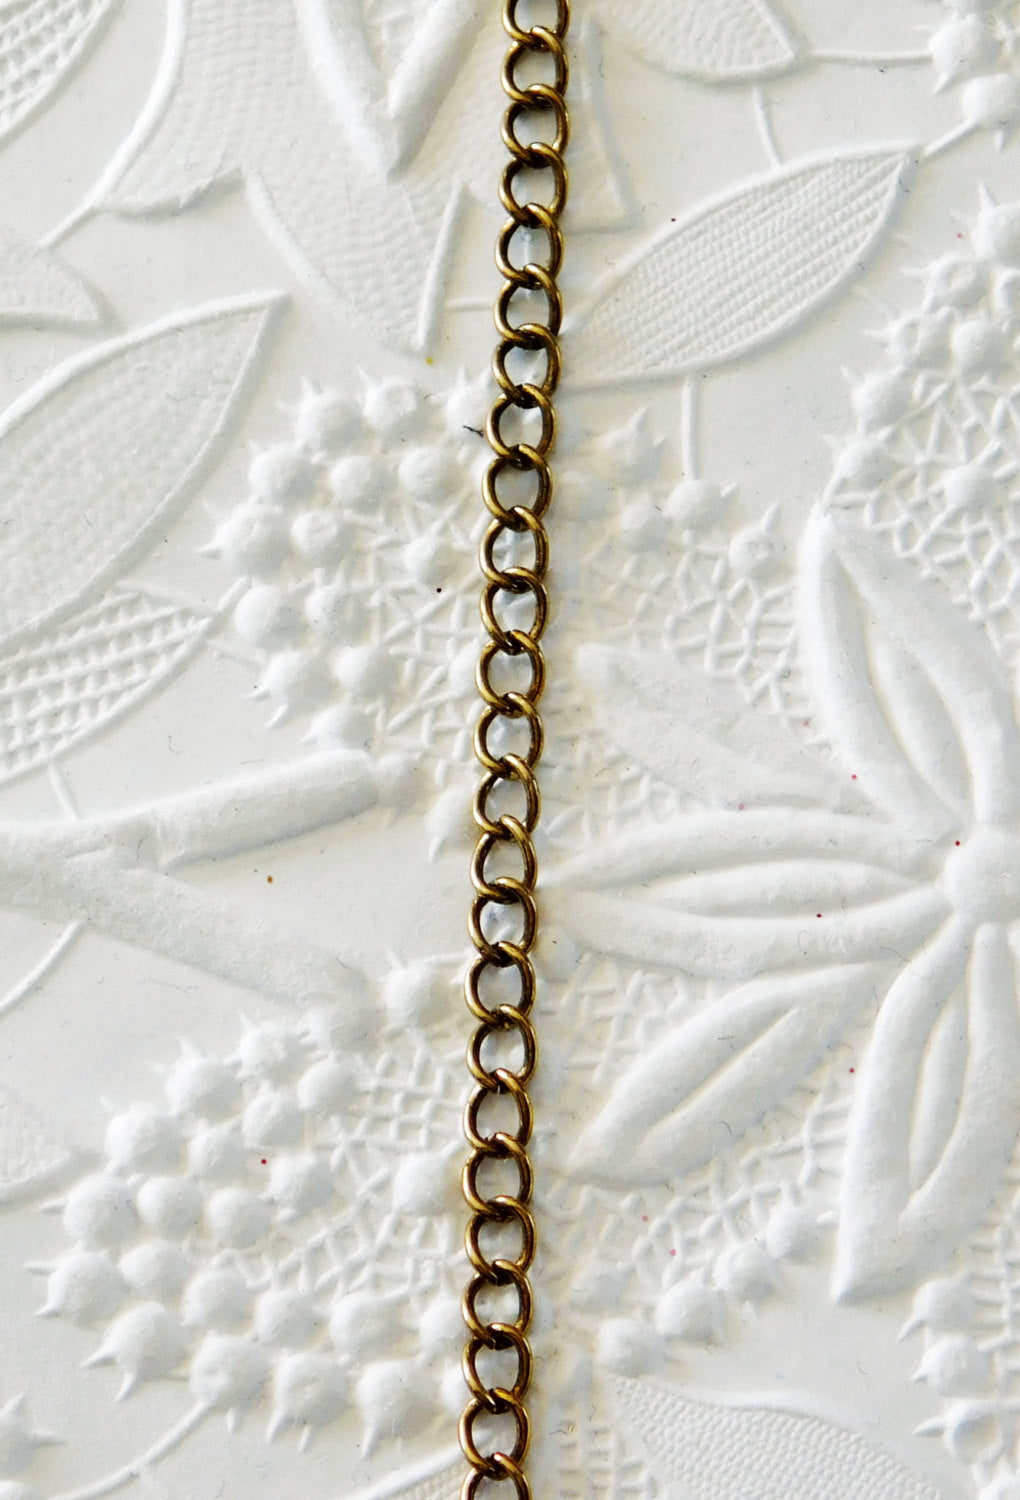 Antiqued Brass Curb Chain_3 feet_3x4mm_Extender Chain_Steampunk Style_Vintage Brown_